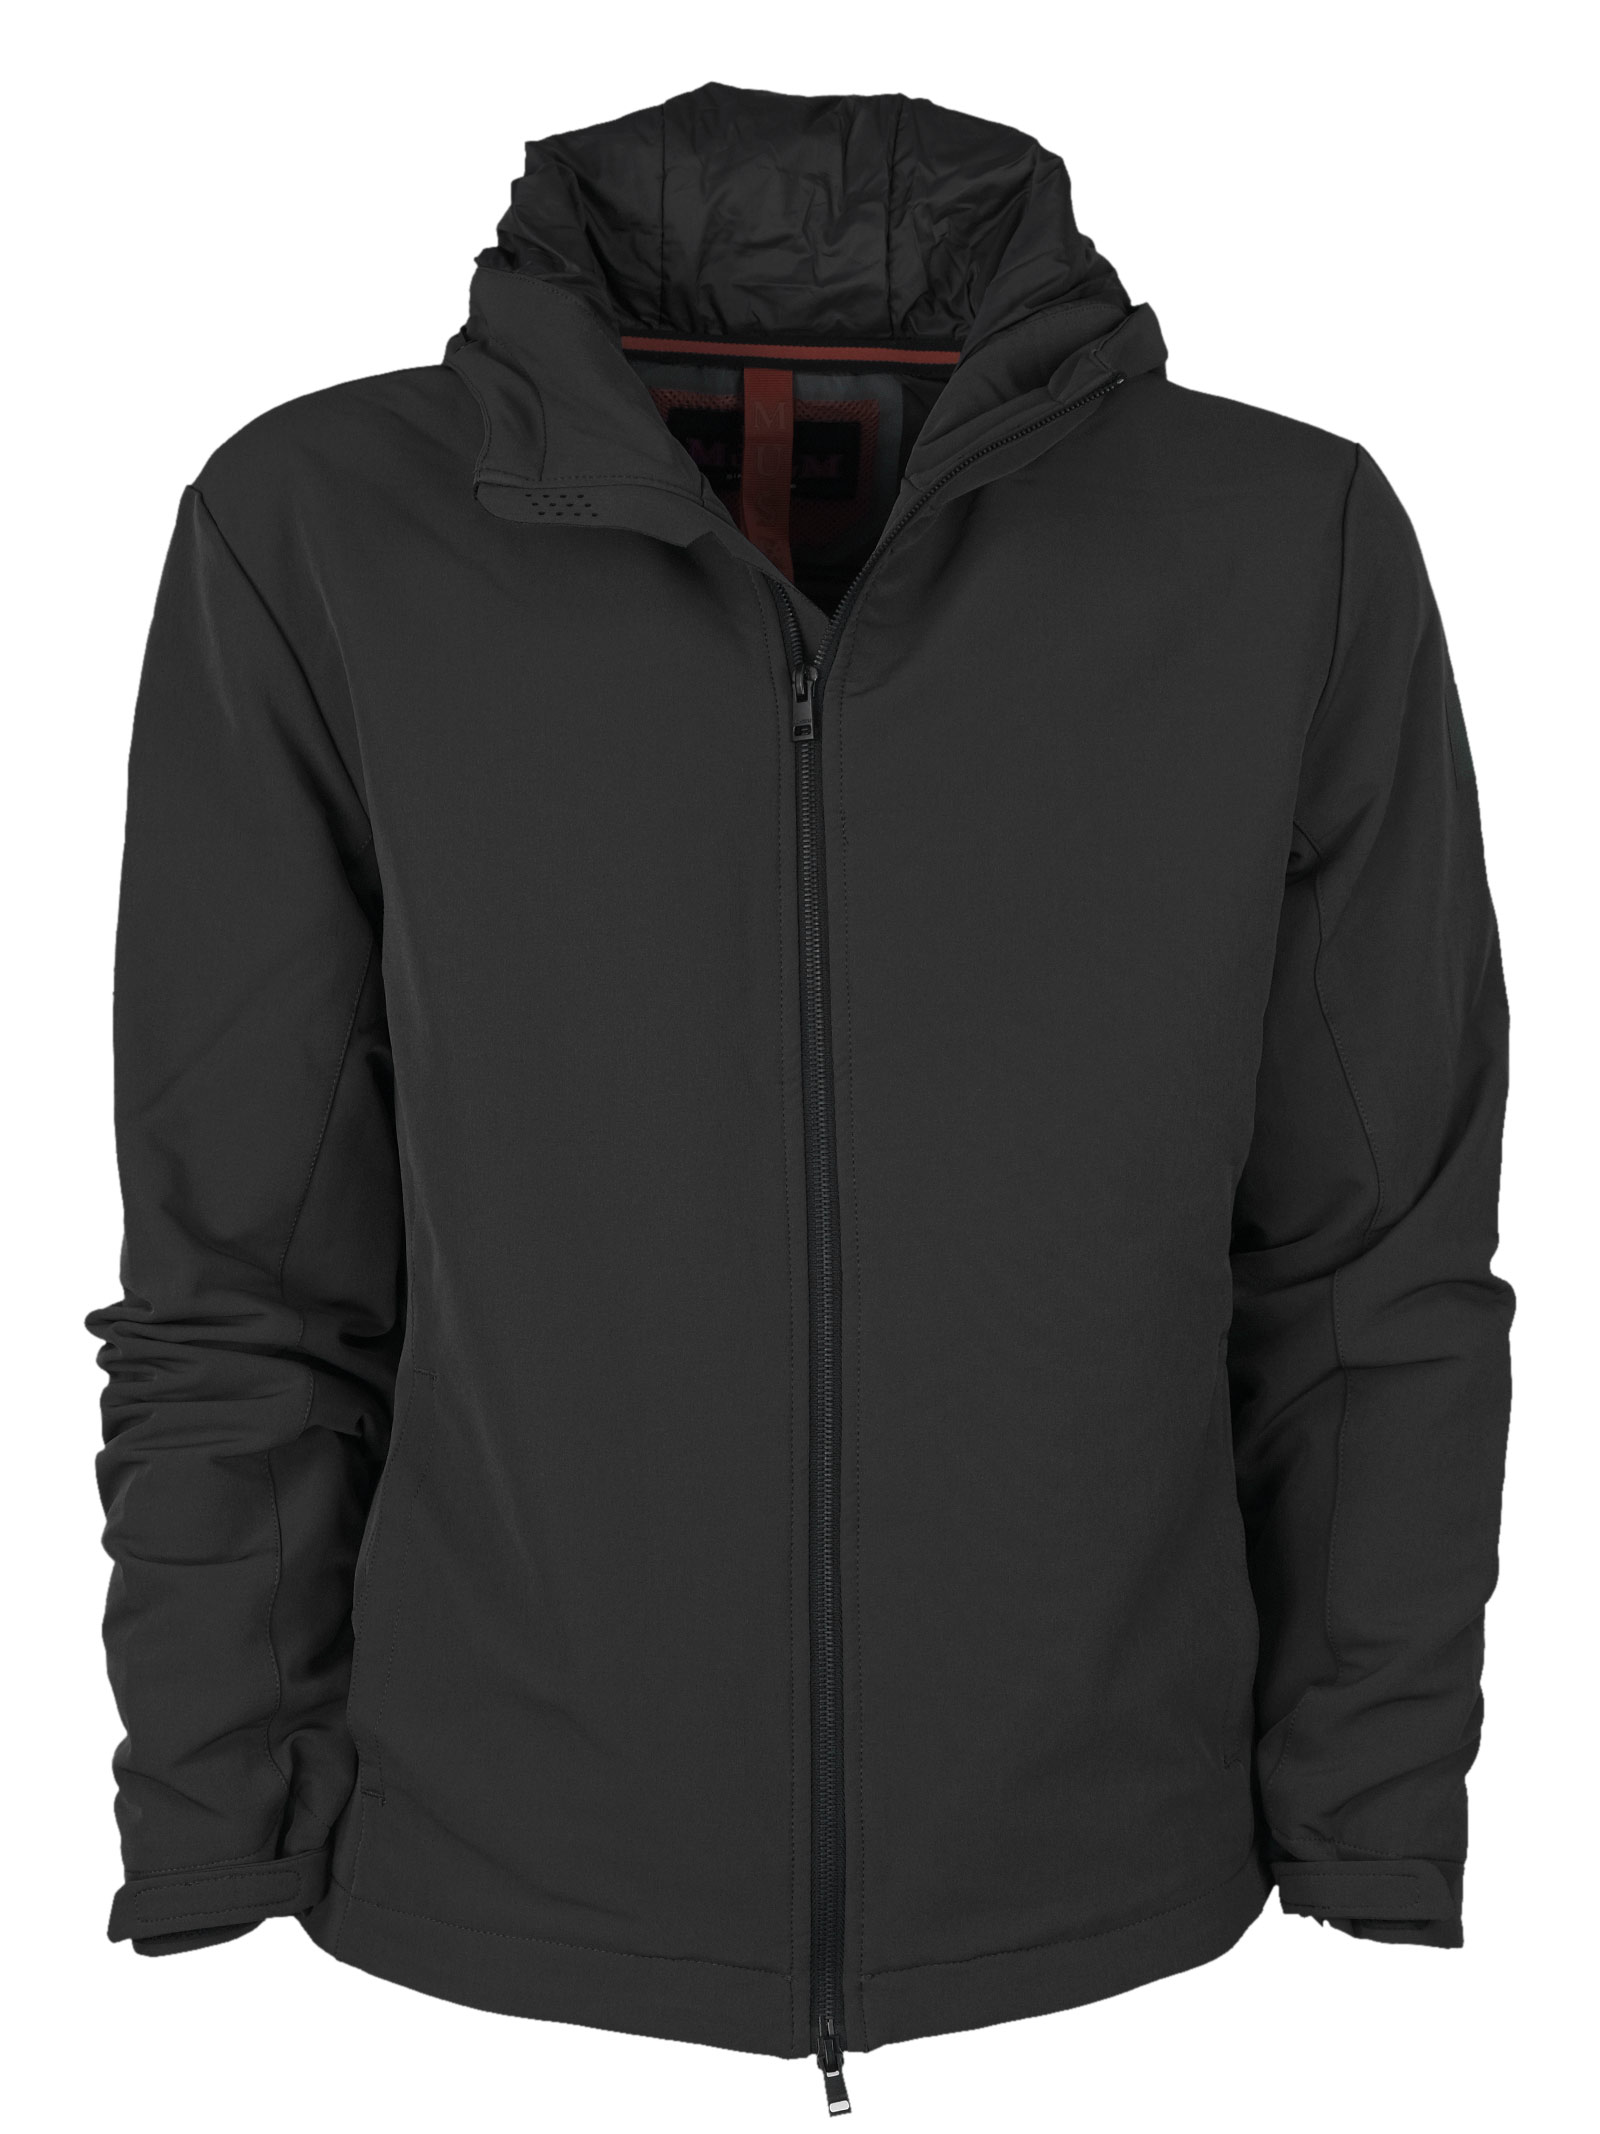 Thermo-lite waterproof jacket MUSEUM   Jackets   DAILY05NY981002